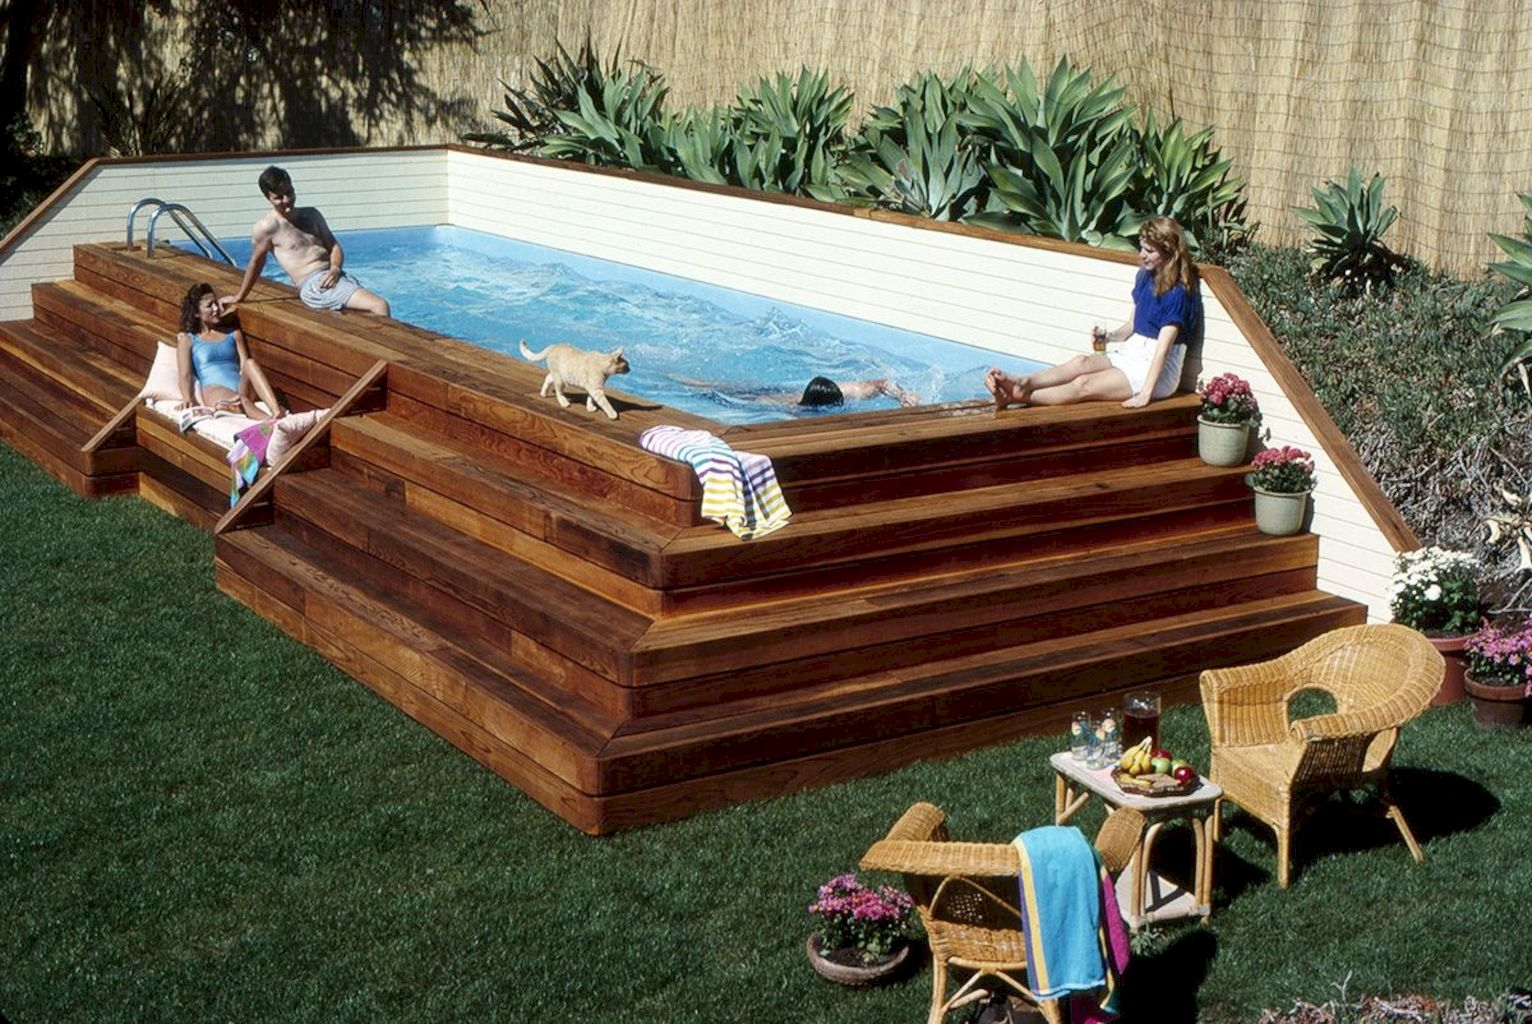 Simple pool designs built above ground designed with cheap materials for simple outdoor relieves Image 14